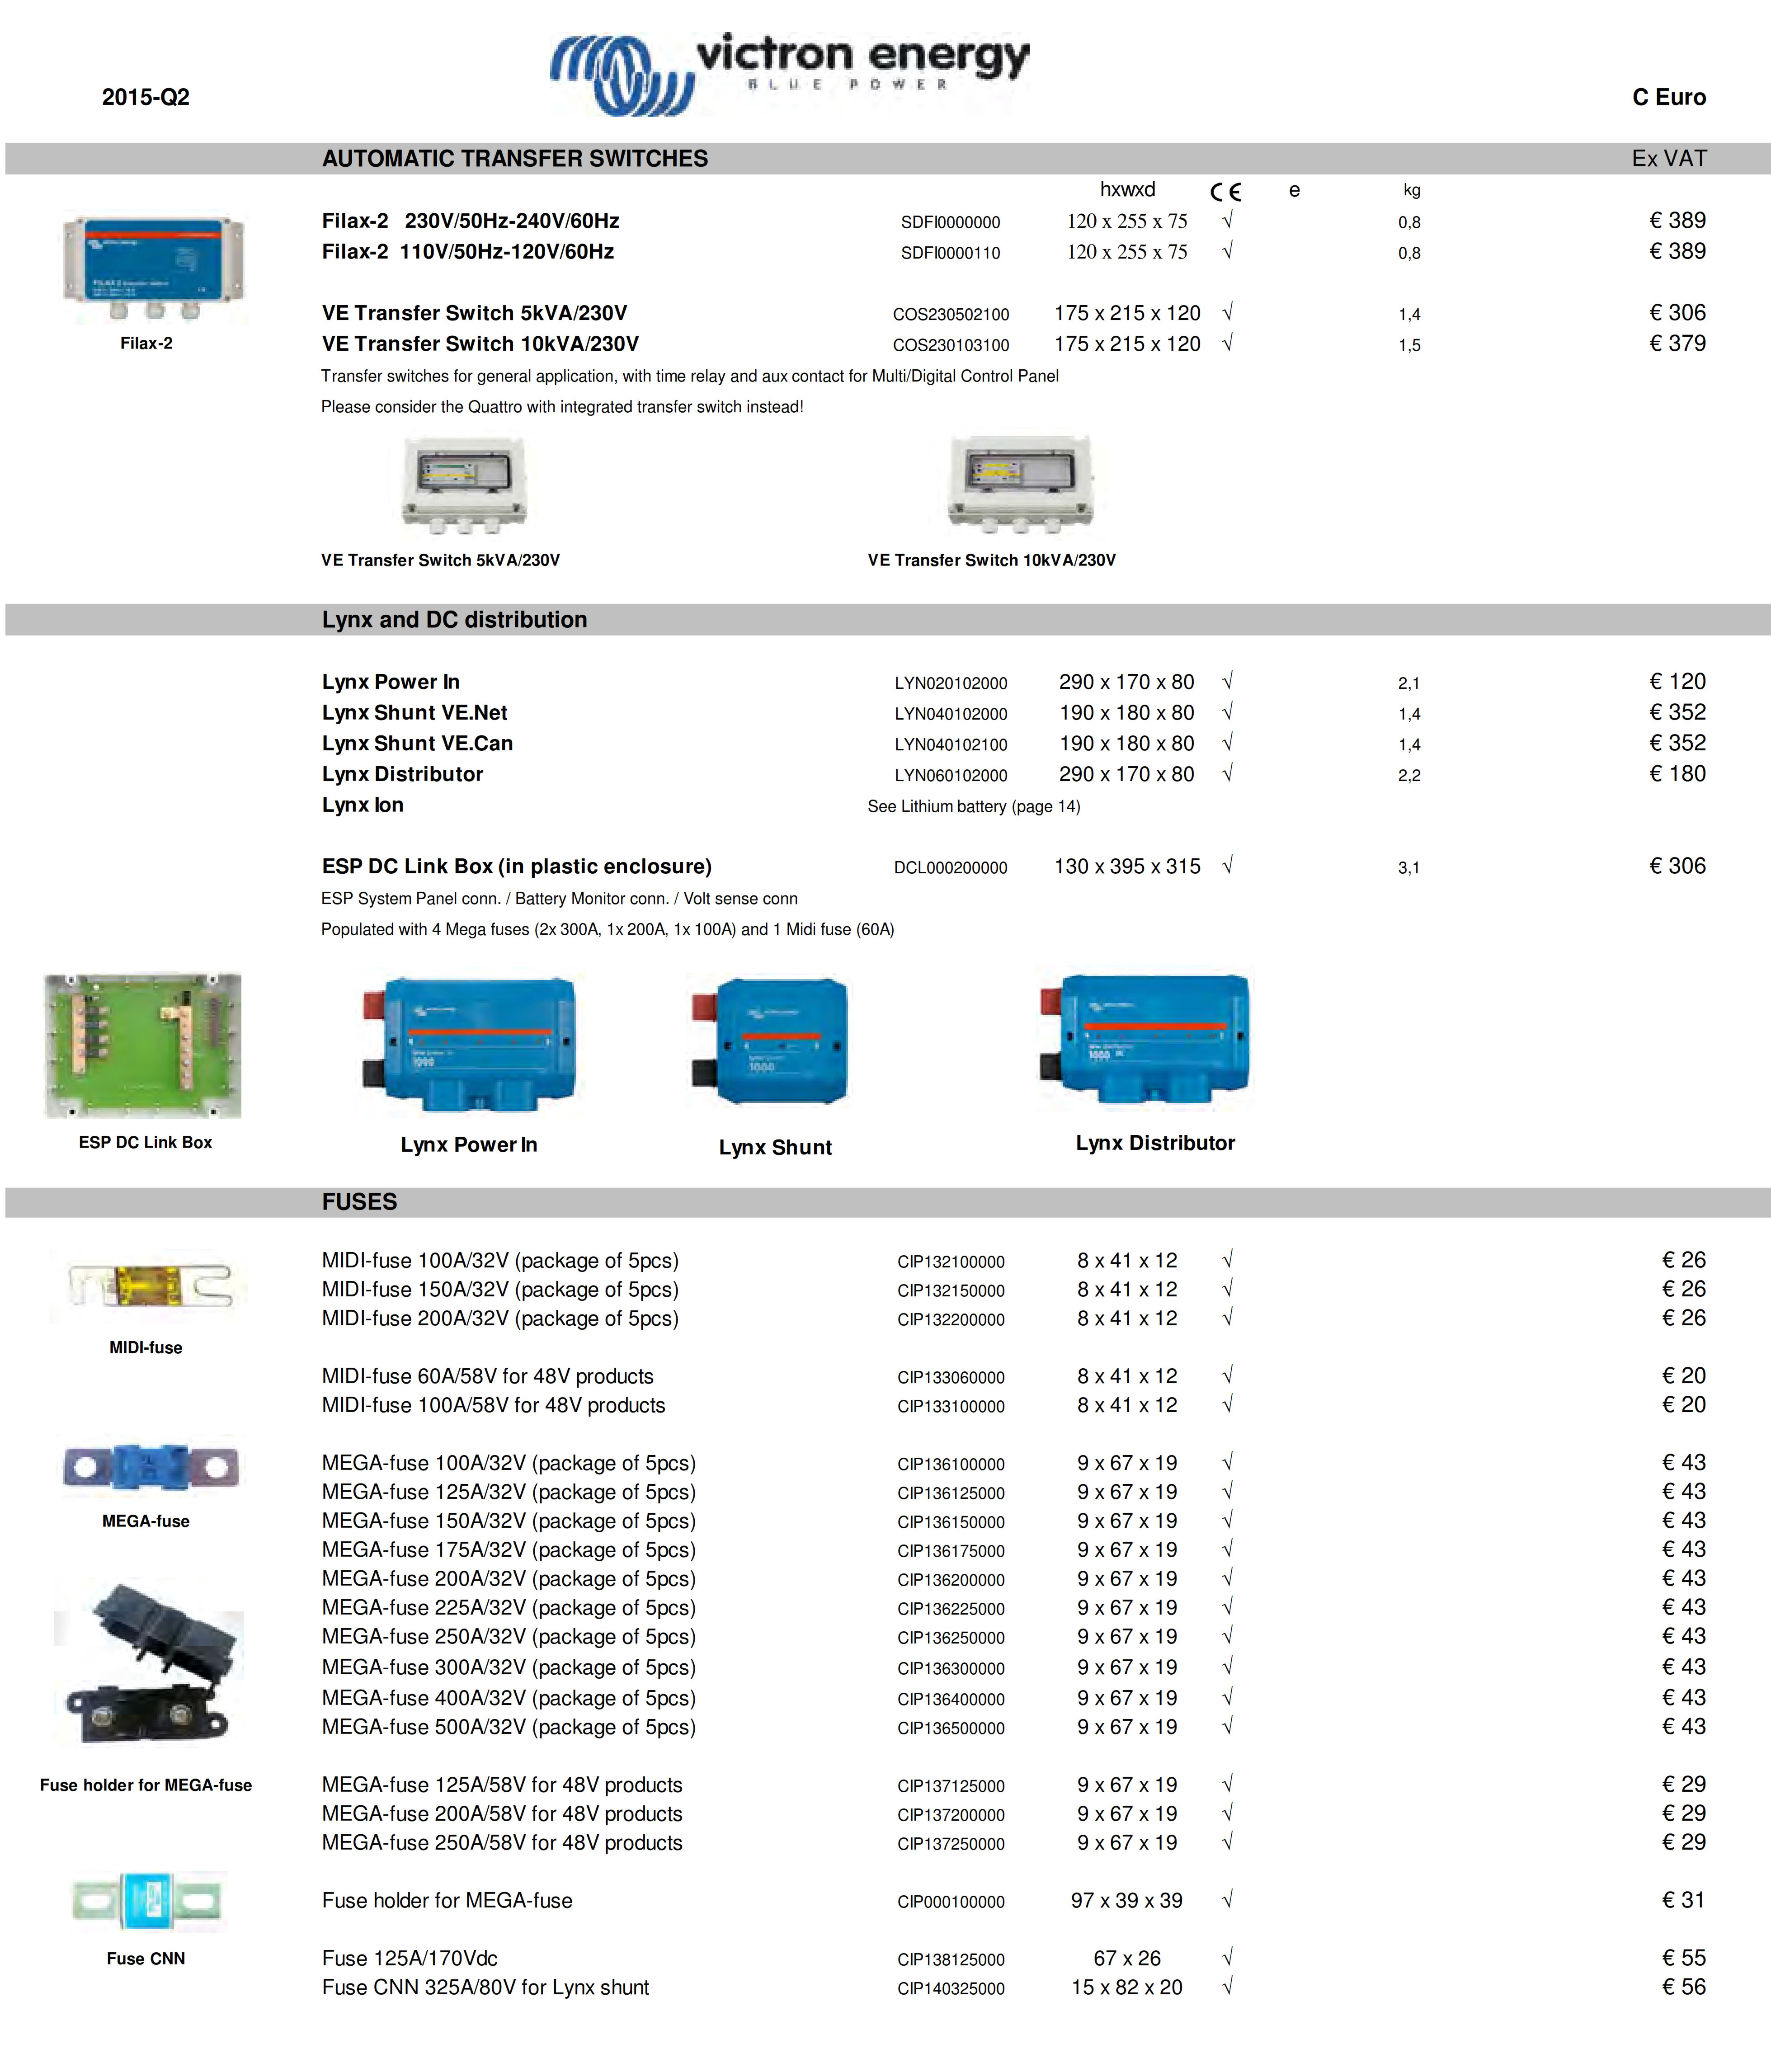 AUTOMATIC TRANSFER SWITCHES  Ex VAT hxwxd e kg Filax-2   230V/50Hz-240V/60Hz        SDFI0000000 120 x 255 x 75 √ 0,8 € 389 Filax-2  110V/50Hz-120V/60Hz         SDFI0000110 120 x 255 x 75 √ 0,8 € 389 VE Transfer Switch 5kVA/230V COS230502100 175 x 215 x 120 √ 1,4 € 306 VE Transfer Switch 10kVA/230V COS230103100 175 x 215 x 120 √ 1,5 € 379 Transfer switches for general application, with time relay and aux contact for Multi/Digital Control Panel Please consider the Quattro with integrated transfer switch instead! VE Transfer Switch 5kVA/230V VE Transfer Switch 10kVA/230V Lynx and DC distribution   Lynx Power In LYN020102000 290 x 170 x 80 √ 2,1 € 120 Lynx Shunt VE.Net LYN040102000 190 x 180 x 80 √ 1,4 € 352 Lynx Shunt VE.Can LYN040102100 190 x 180 x 80 √ 1,4 € 352 Lynx Distributor LYN060102000 290 x 170 x 80 √ 2,2 € 180 Lynx Ion See Lithium battery (page 14) ESP DC Link Box (in plastic enclosure) DCL000200000 130 x 395 x 315 √ 3,1 € 306 ESP System Panel conn. / Battery Monitor conn. / Volt sense conn Populated with 4 Mega fuses (2x 300A, 1x 200A, 1x 100A) and 1 Midi fuse (60A) FUSES Lynx Power In Lynx Shunt Lynx Distributor MIDI-fuse 100A/32V (package of 5pcs) CIP132100000 8 x 41 x 12 √ € 26 MIDI-fuse 150A/32V (package of 5pcs) CIP132150000 8 x 41 x 12 √ € 26 MIDI-fuse 200A/32V (package of 5pcs) CIP132200000 8 x 41 x 12 √ € 26 MIDI-fuse 60A/58V for 48V products CIP133060000 8 x 41 x 12 √ € 20 MIDI-fuse 100A/58V for 48V products CIP133100000 8 x 41 x 12 √ € 20 MEGA-fuse 100A/32V (package of 5pcs) CIP136100000 9 x 67 x 19 √ € 43 MEGA-fuse 125A/32V (package of 5pcs) CIP136125000 9 x 67 x 19 √ € 43 MEGA-fuse 150A/32V (package of 5pcs) CIP136150000 9 x 67 x 19 √ € 43 MEGA-fuse 175A/32V (package of 5pcs) CIP136175000 9 x 67 x 19 √ € 43 MEGA-fuse 200A/32V (package of 5pcs) CIP136200000 9 x 67 x 19 √ € 43 MEGA-fuse 225A/32V (package of 5pcs) CIP136225000 9 x 67 x 19 √ € 43 MEGA-fuse 250A/32V (package of 5pcs) CIP136250000 9 x 67 x 19 √ € 43 MEGA-fuse 300A/32V (package of 5pcs)